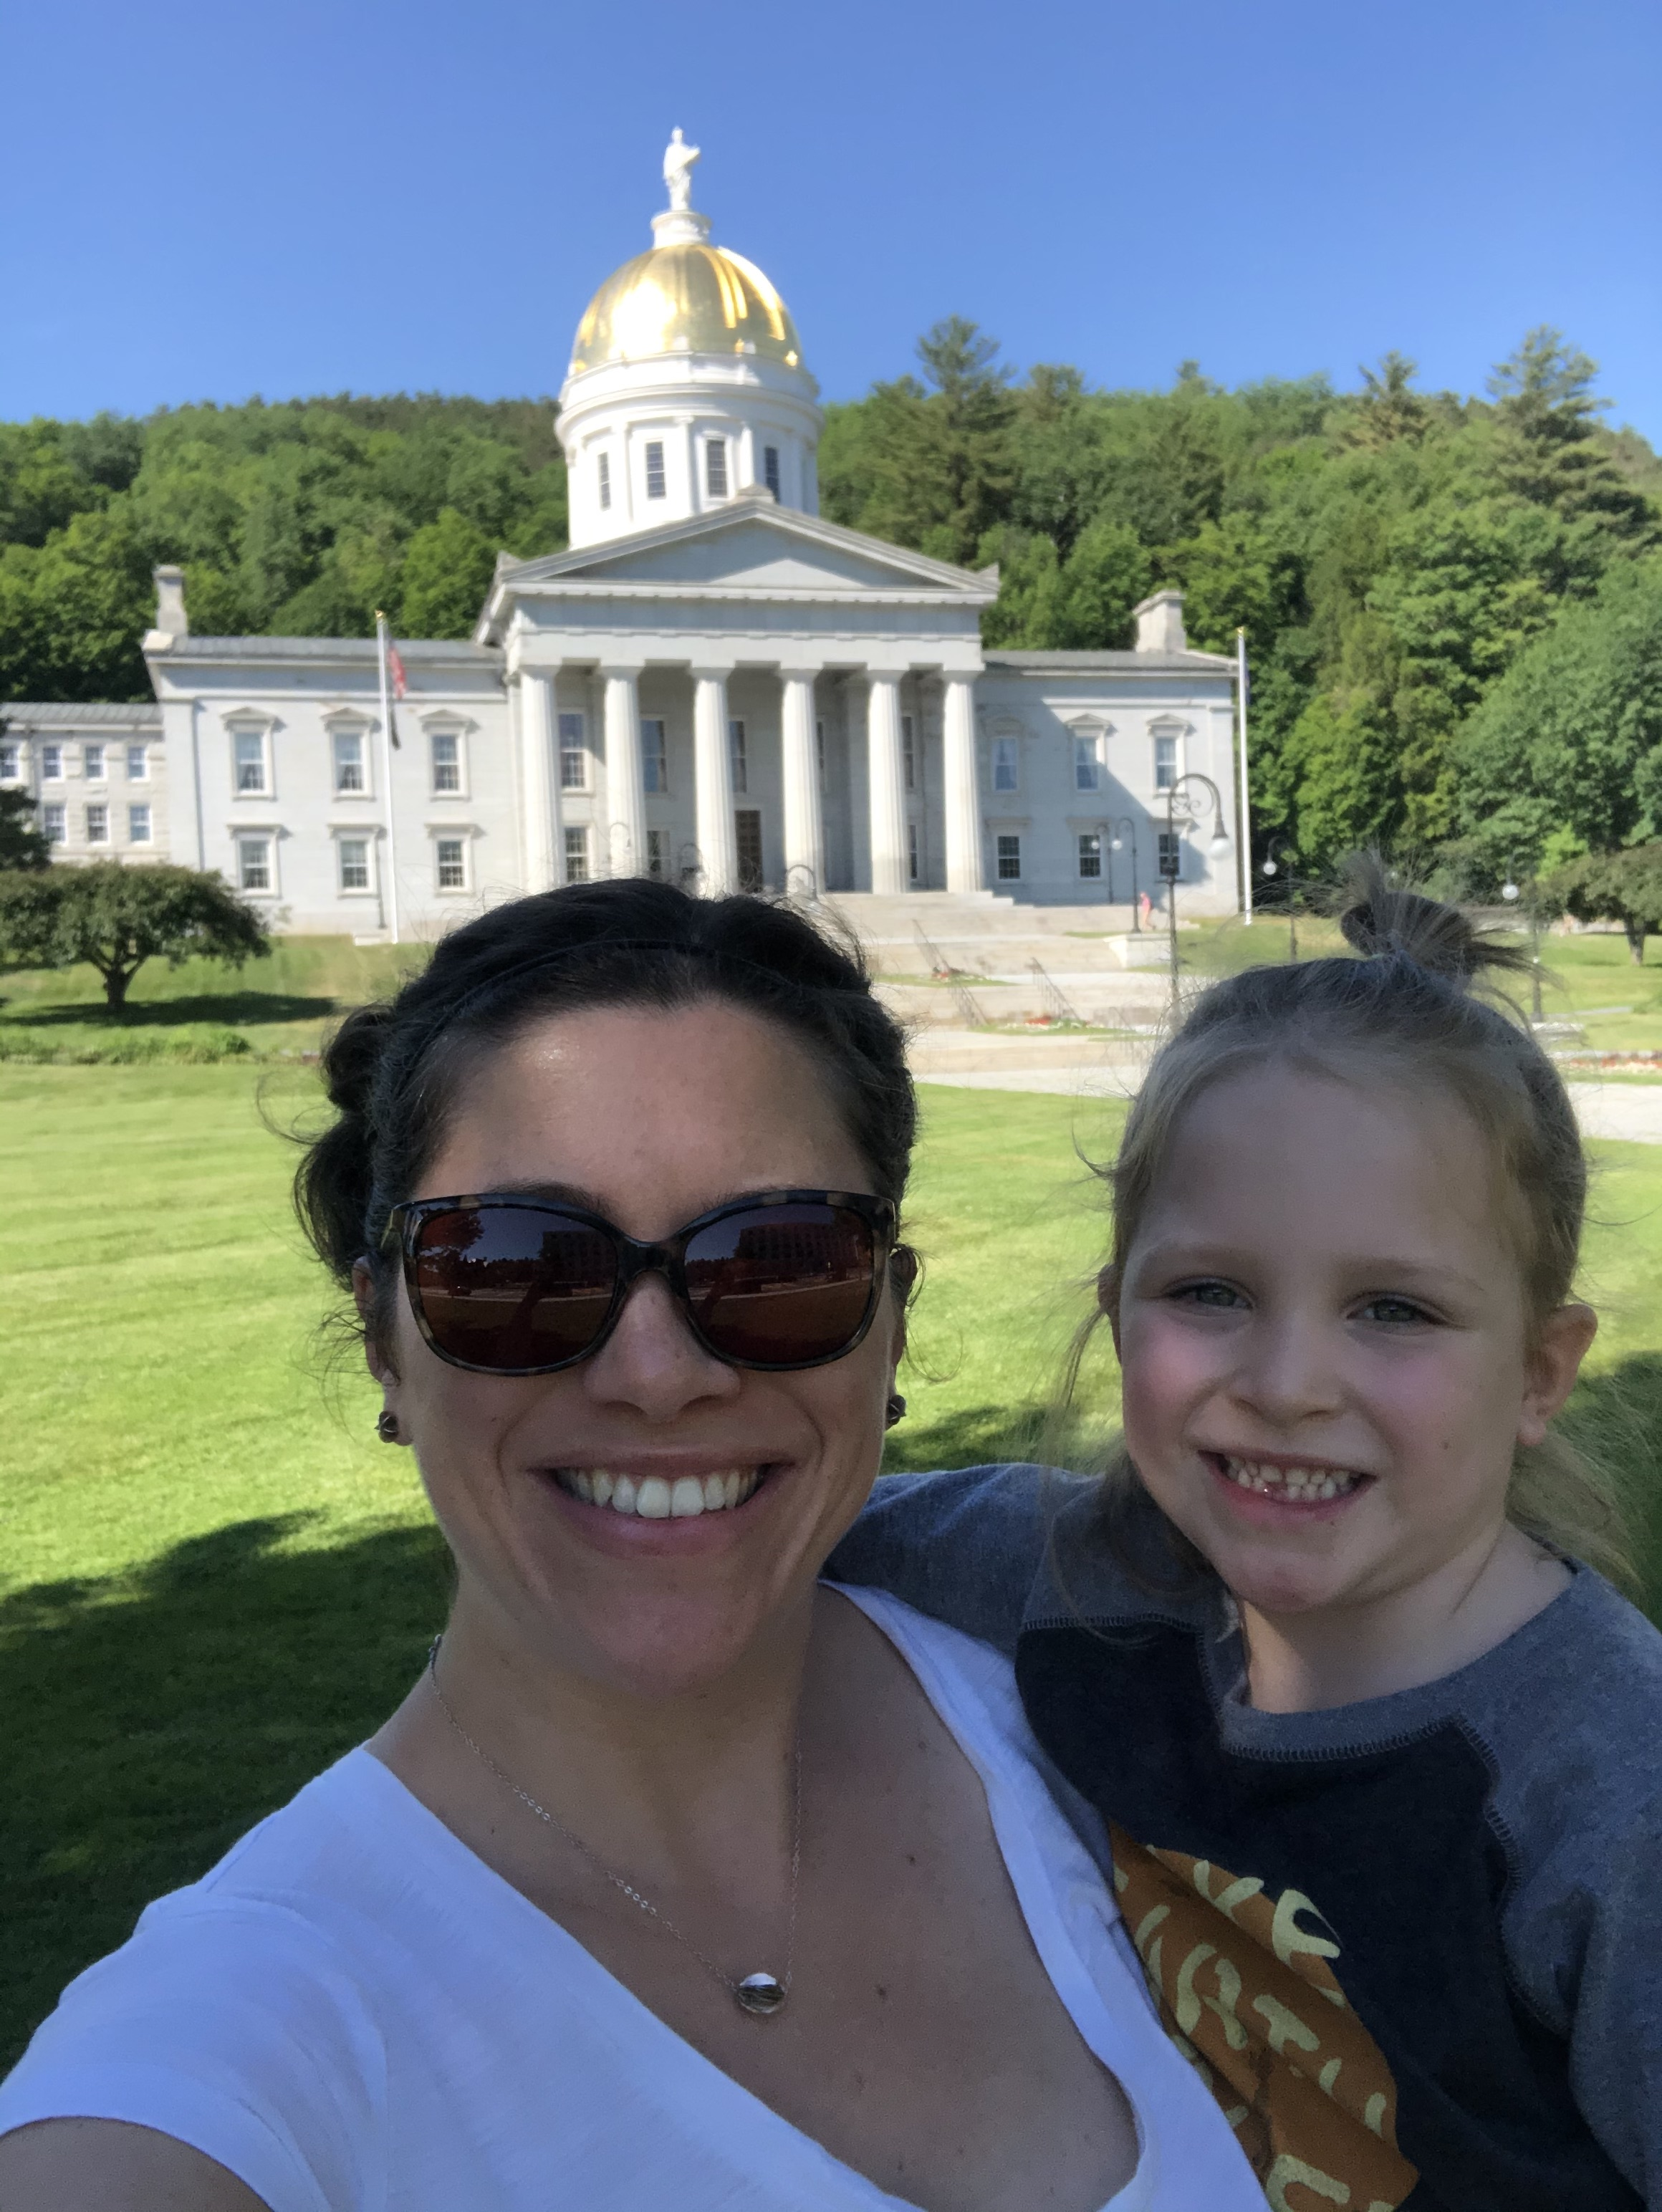 Emma and her daughter visiting the Statehouse this summer.